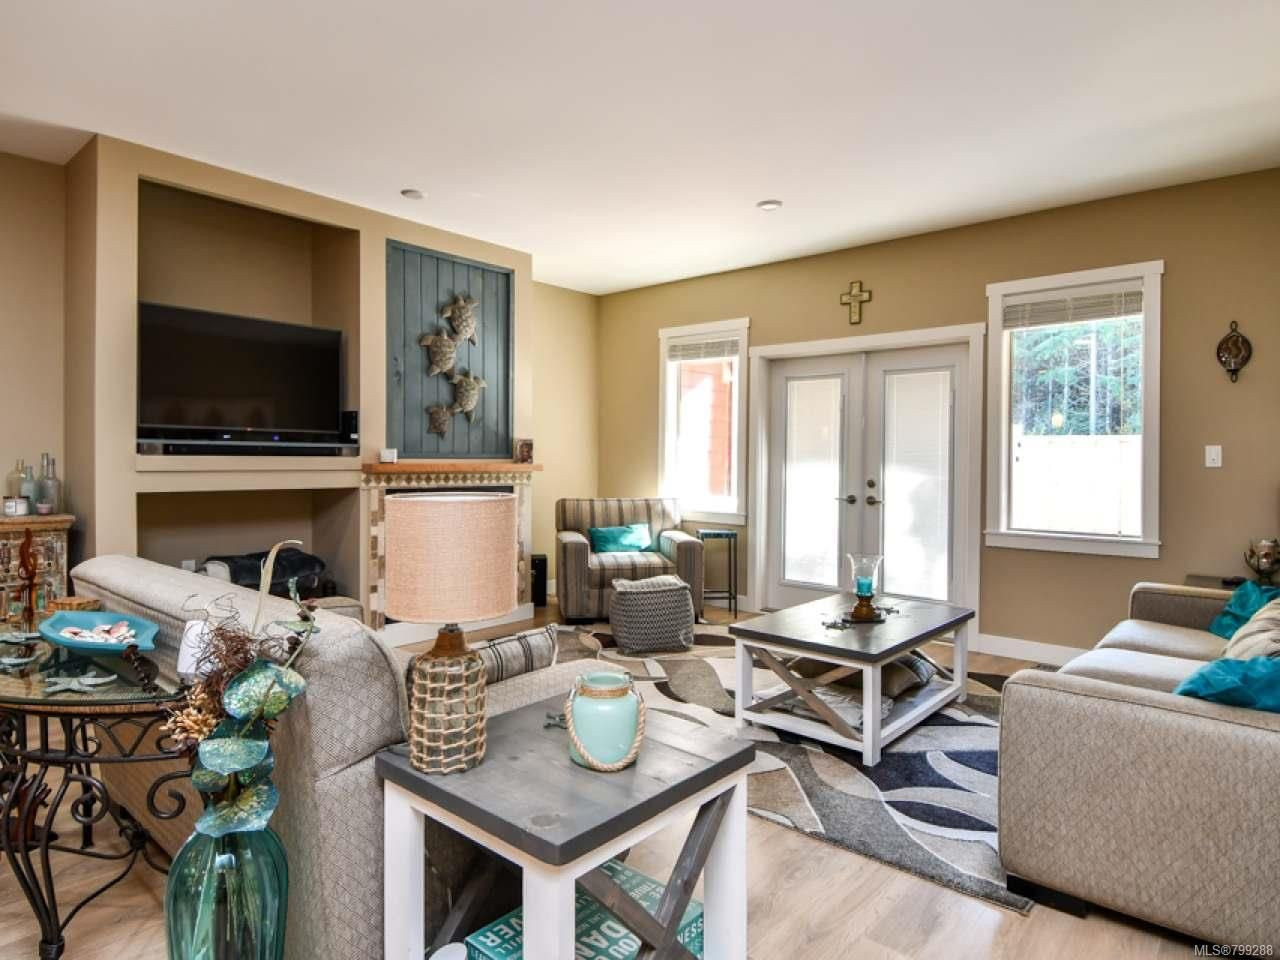 Photo 5: Photos: 11 301 Arizona Dr in CAMPBELL RIVER: CR Willow Point Half Duplex for sale (Campbell River)  : MLS®# 799288